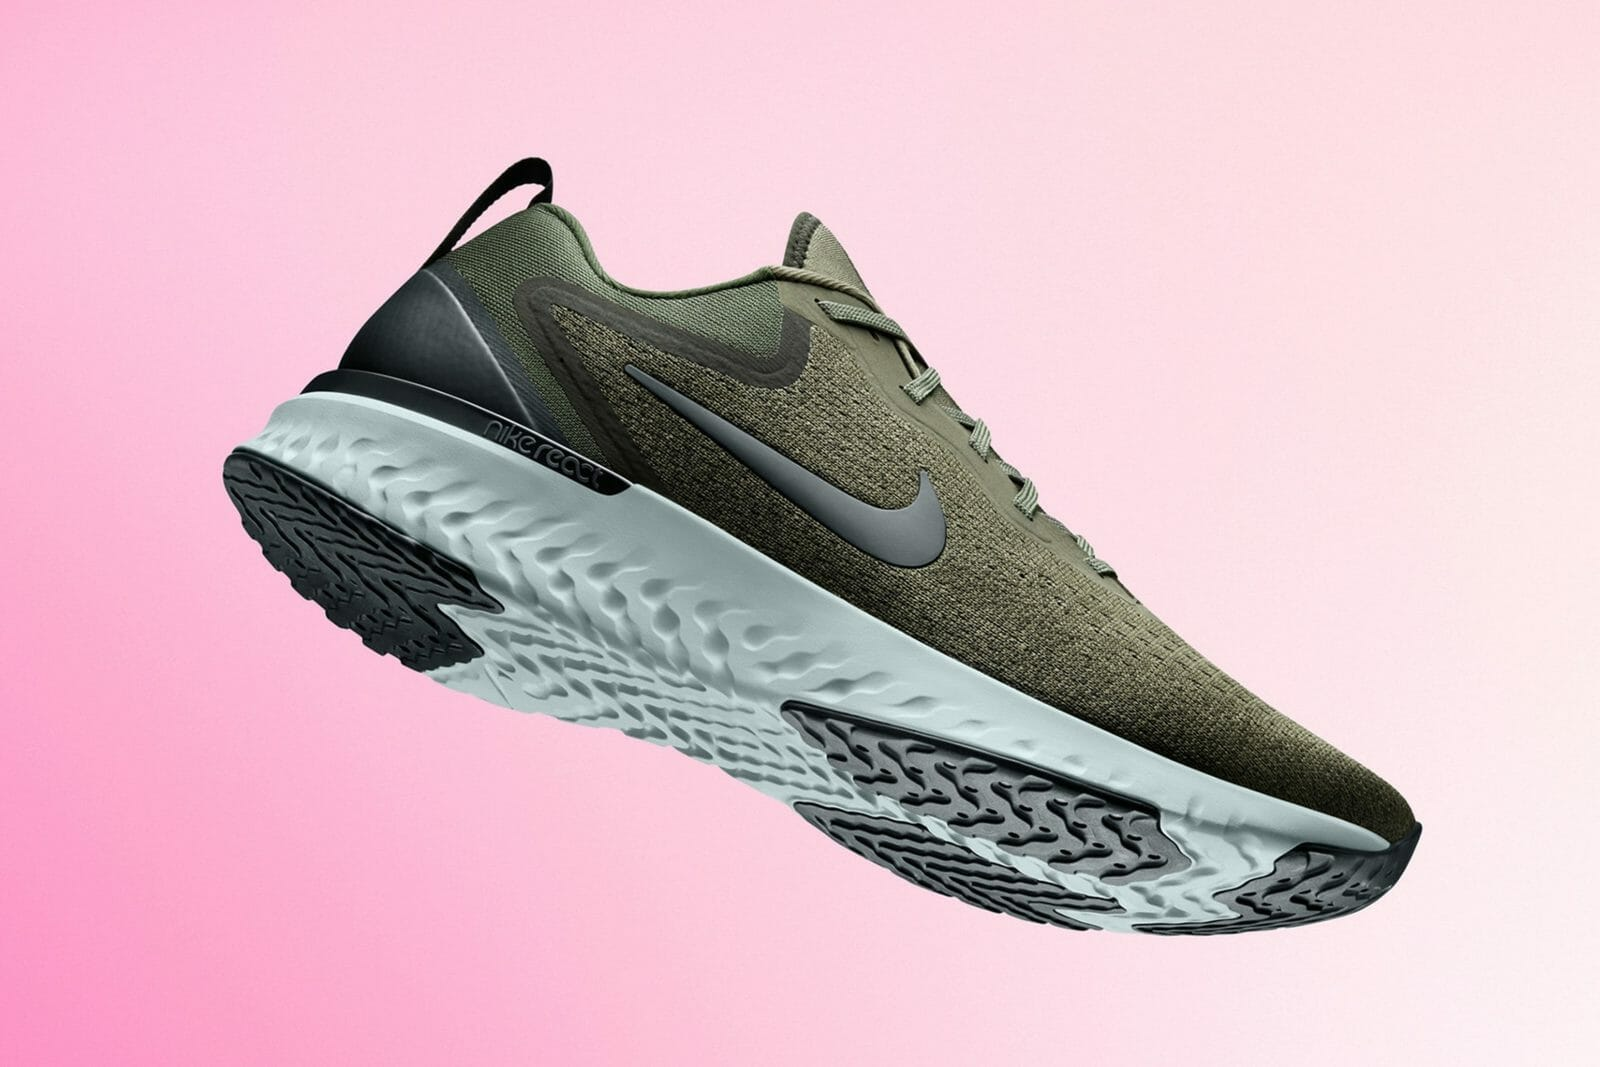 New Nike Odyssey React ready to launch on April 19th | Running Shoes Guru